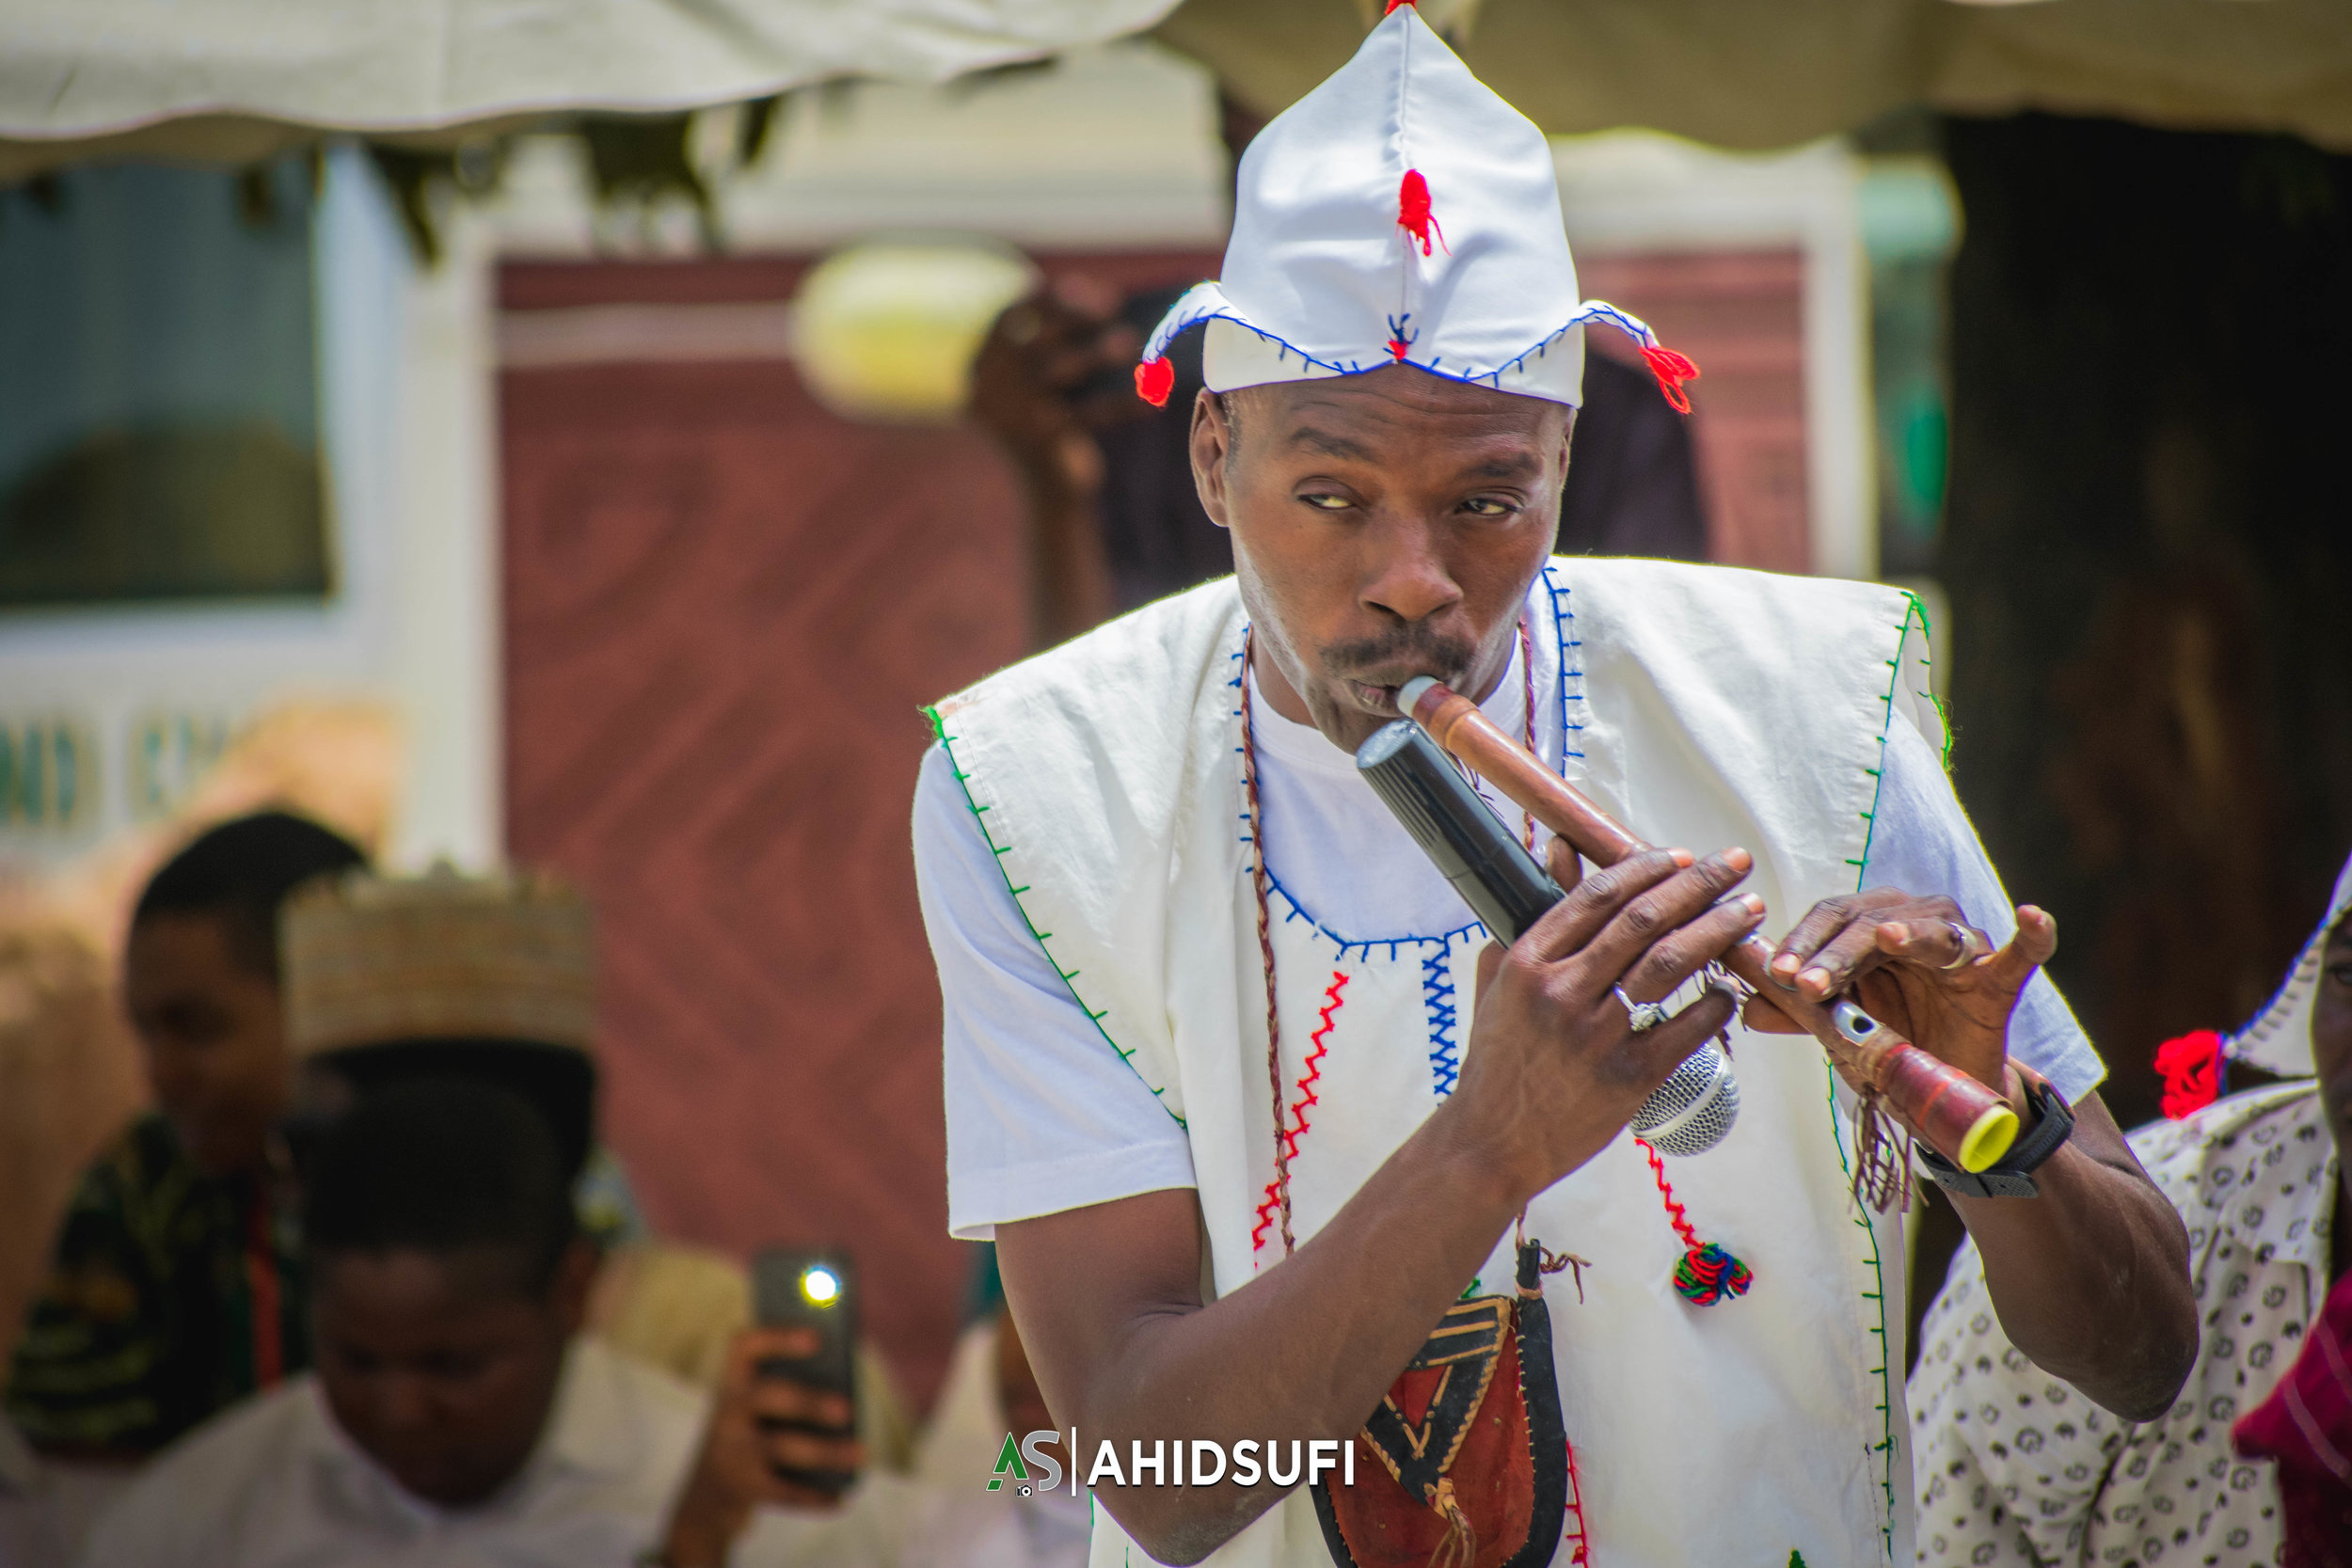 AFRICA DAY - Portraying Climate Advocacy Through Traditional Music and Dance